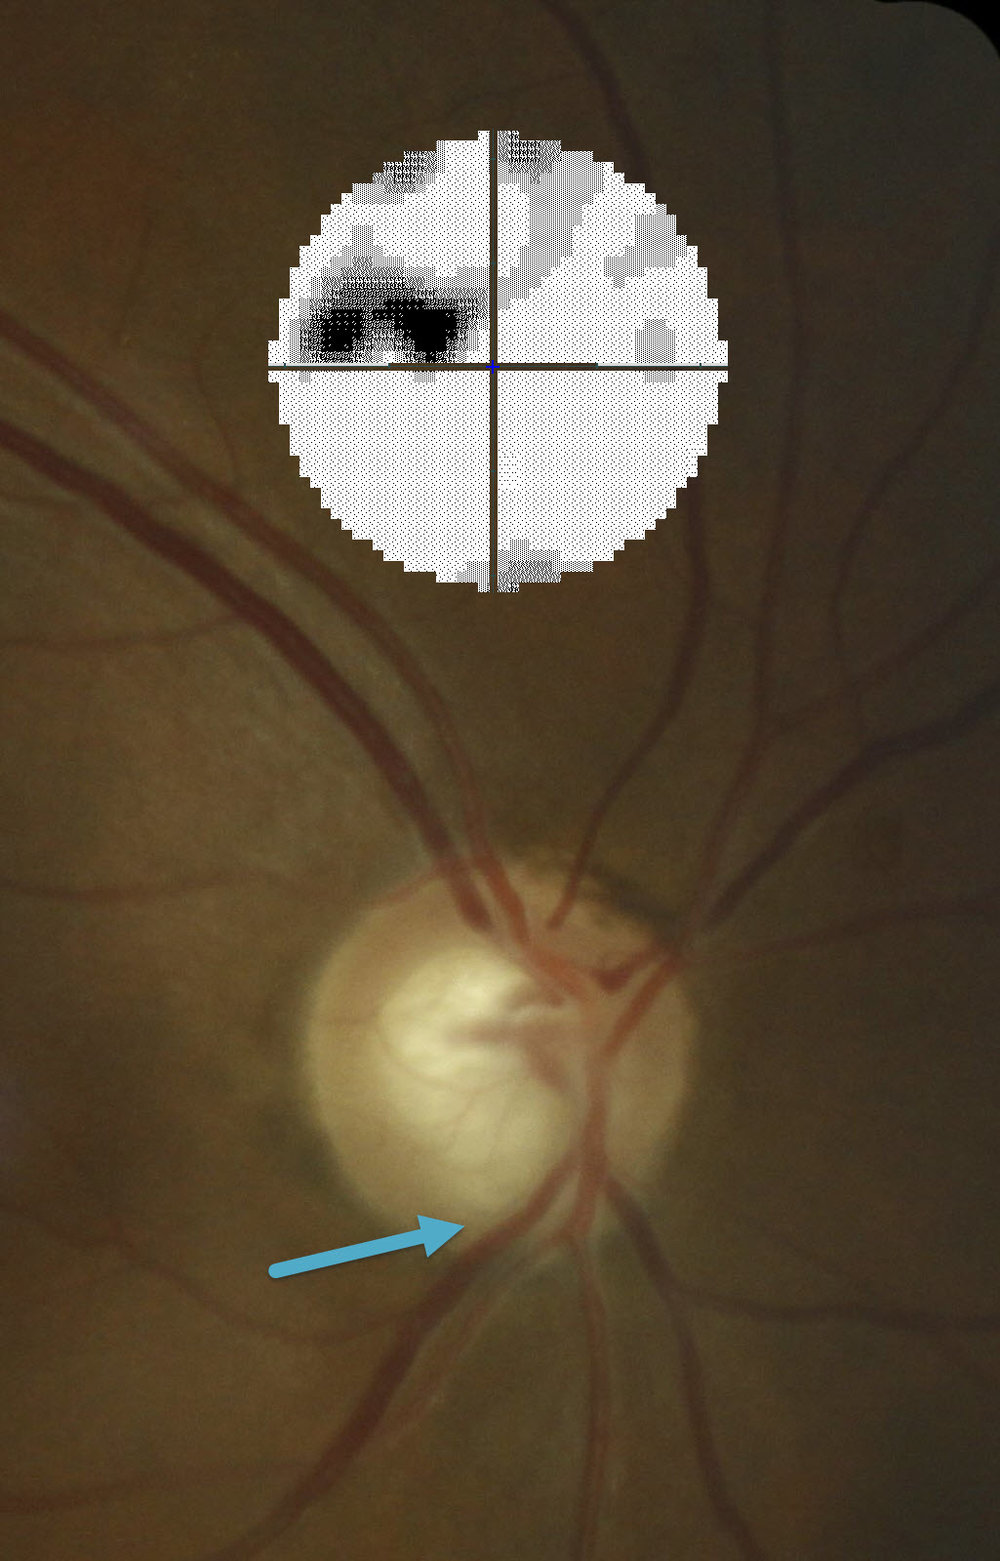 Image of a Optic Nerve with Glaucoma